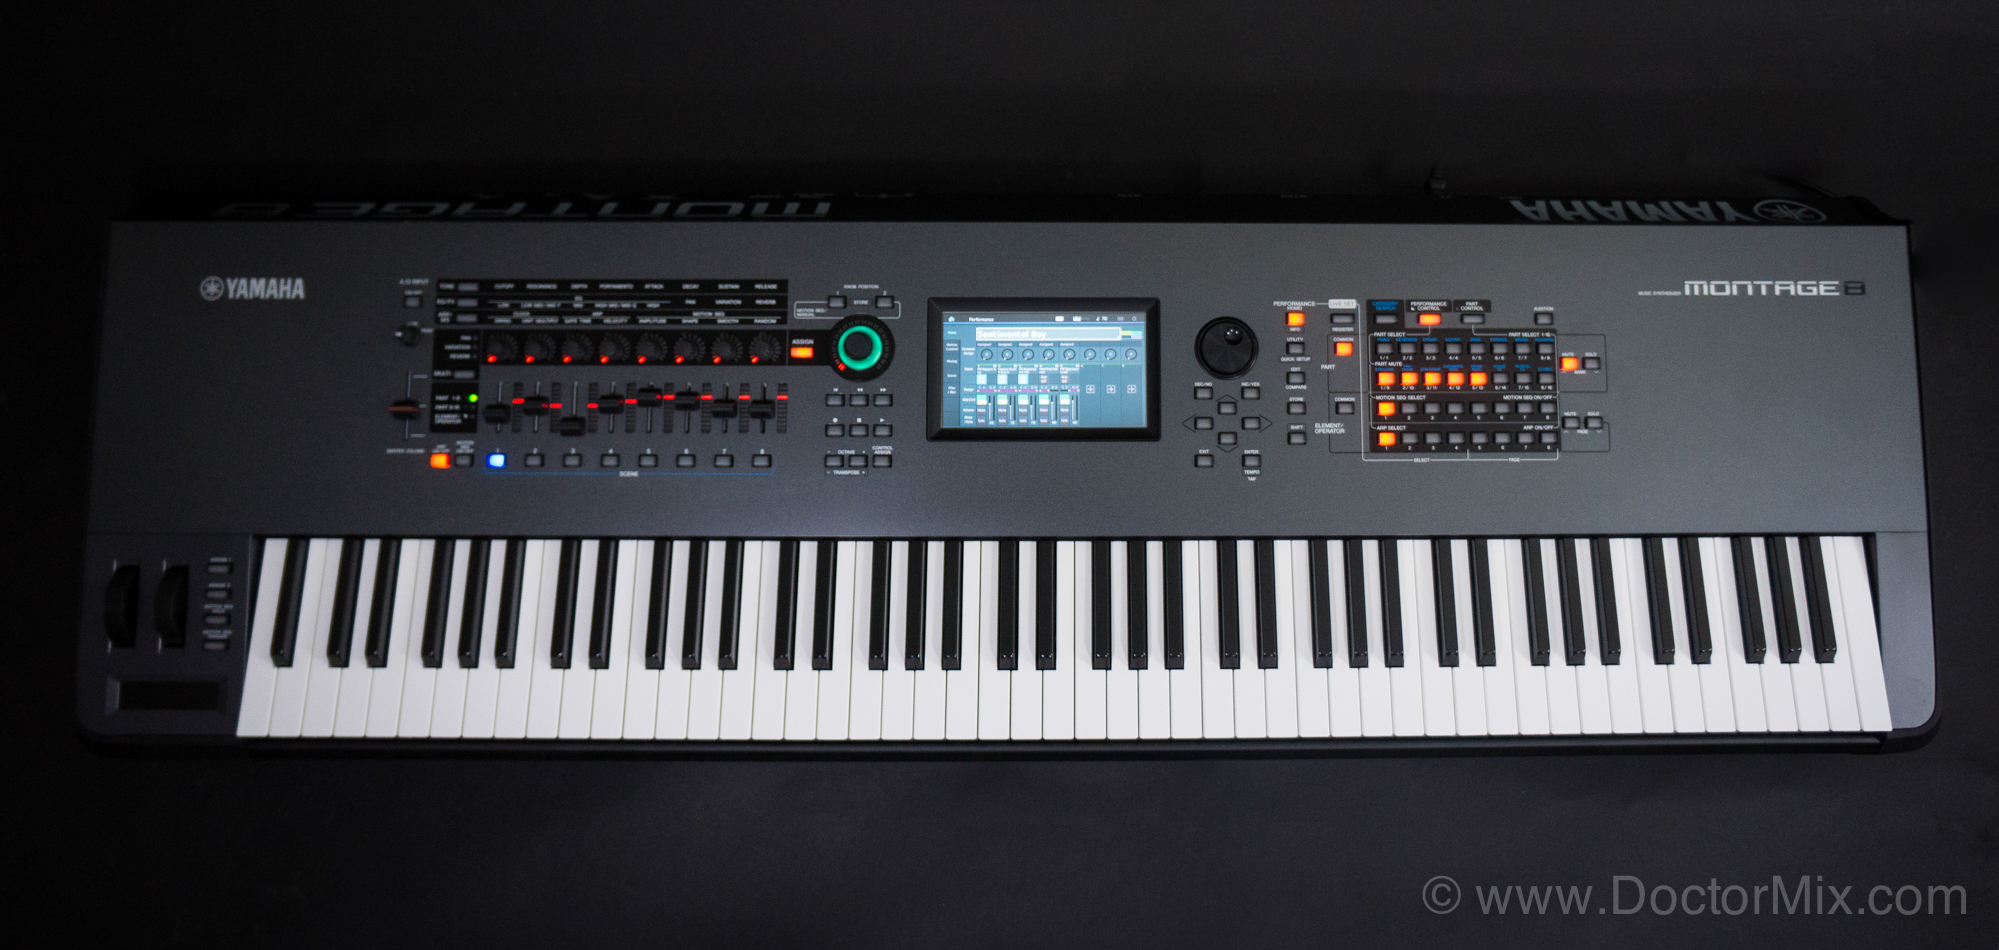 why won't roland, yamaha, and moog recreate their classic synths